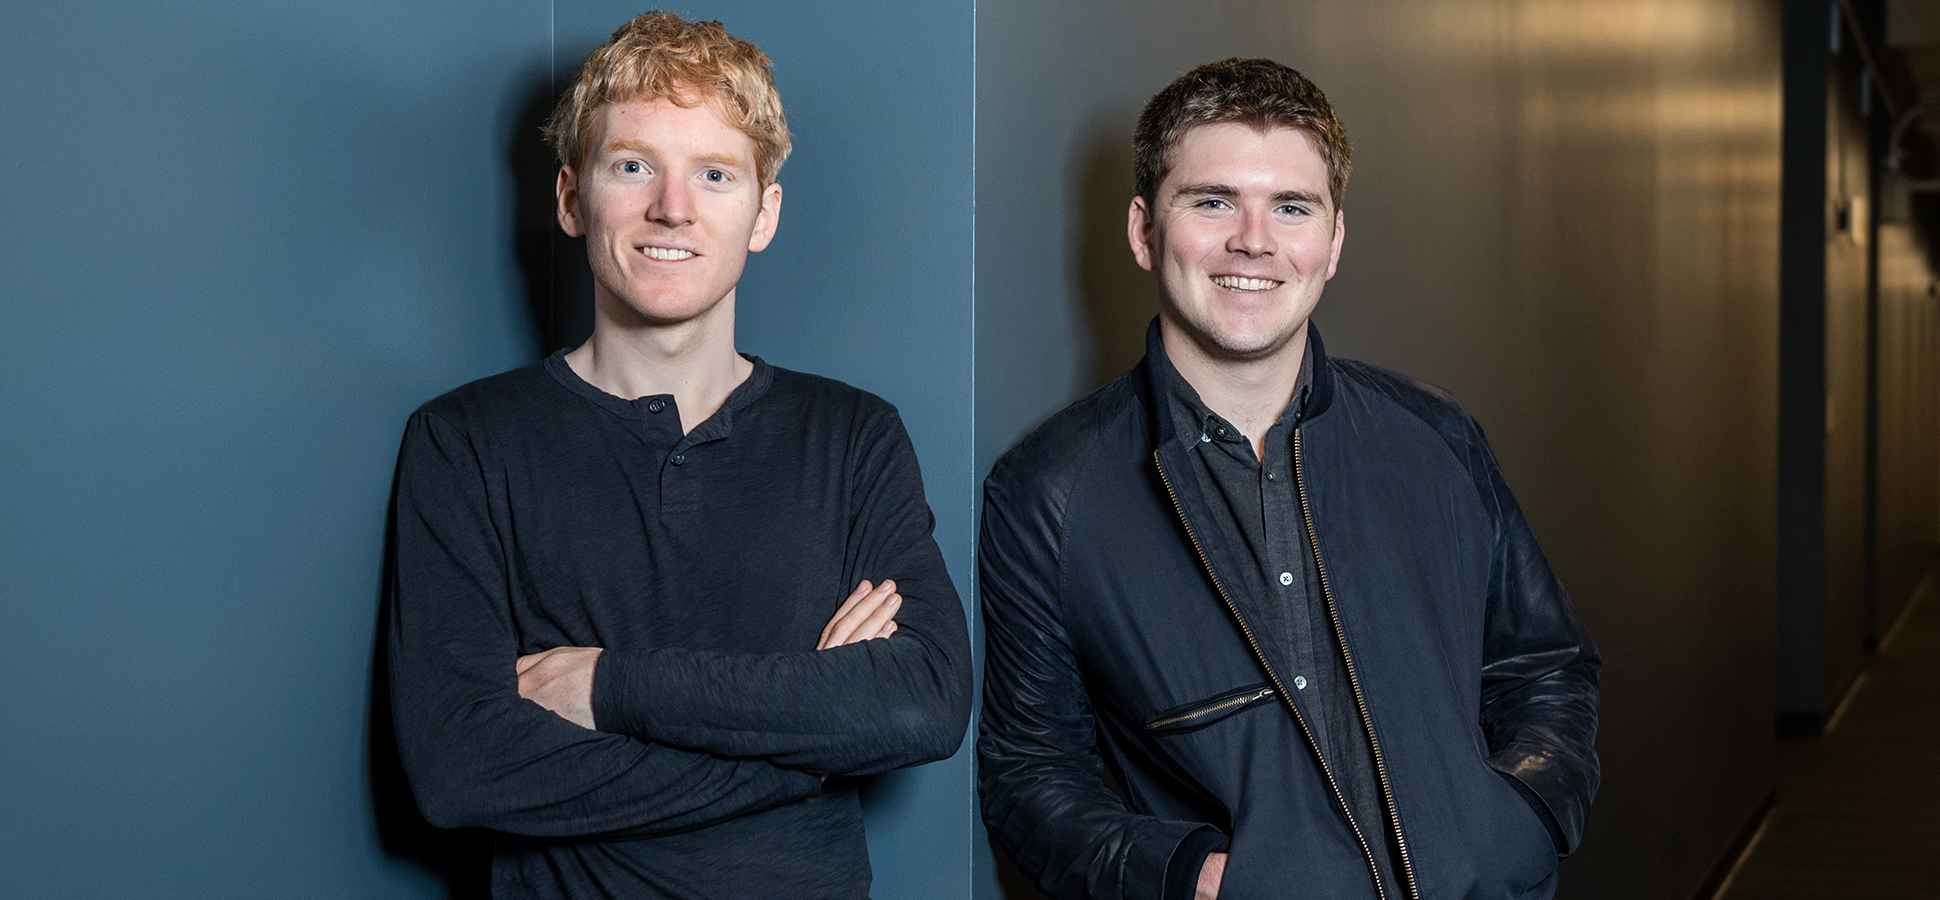 Stripe Makes a Big Bet on Letting Anyone, Anywhere, Start a U.S. Business